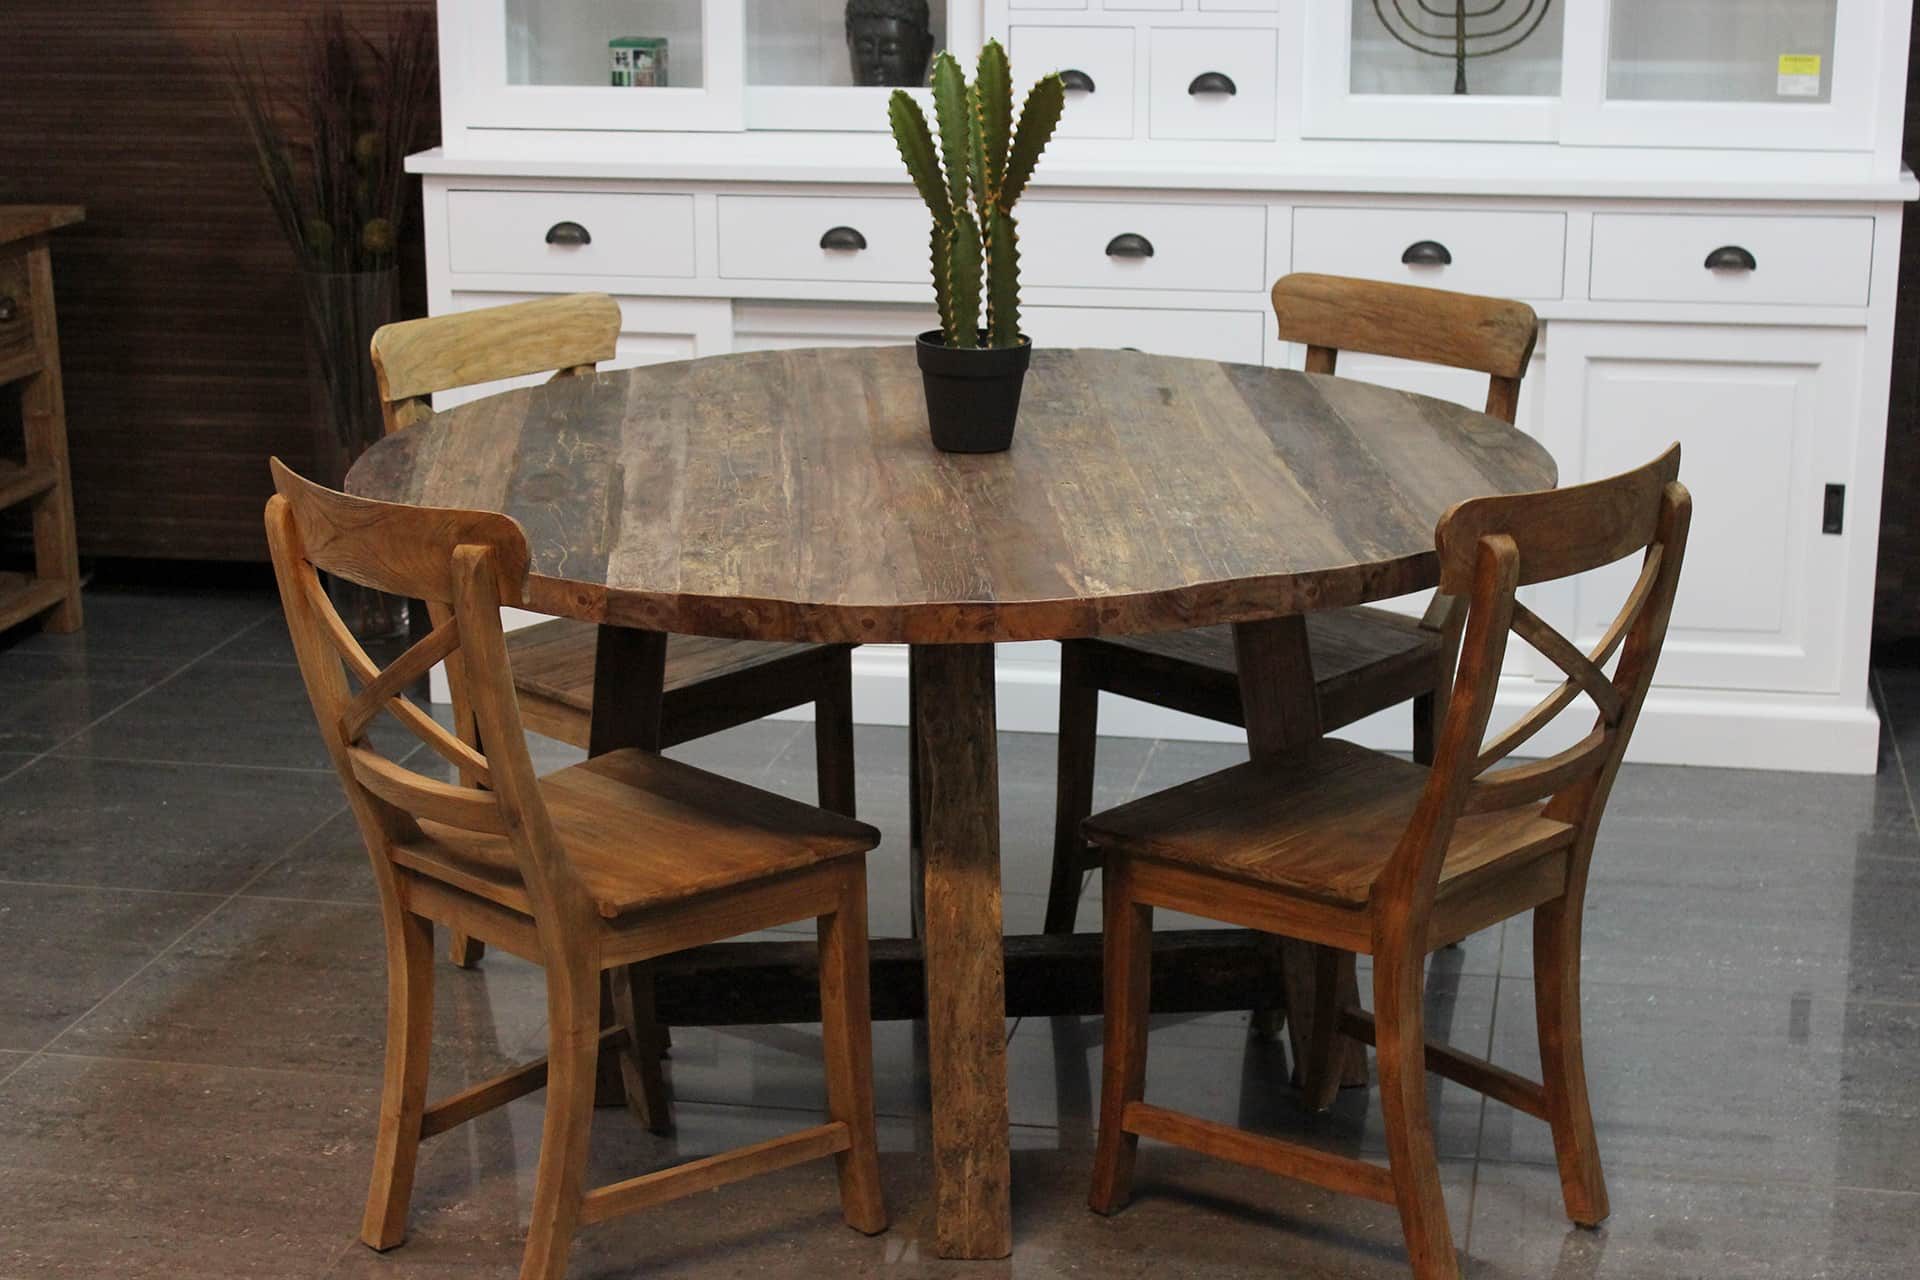 Teak campur tr mix robuuste ronde eettafel mixed wood teak